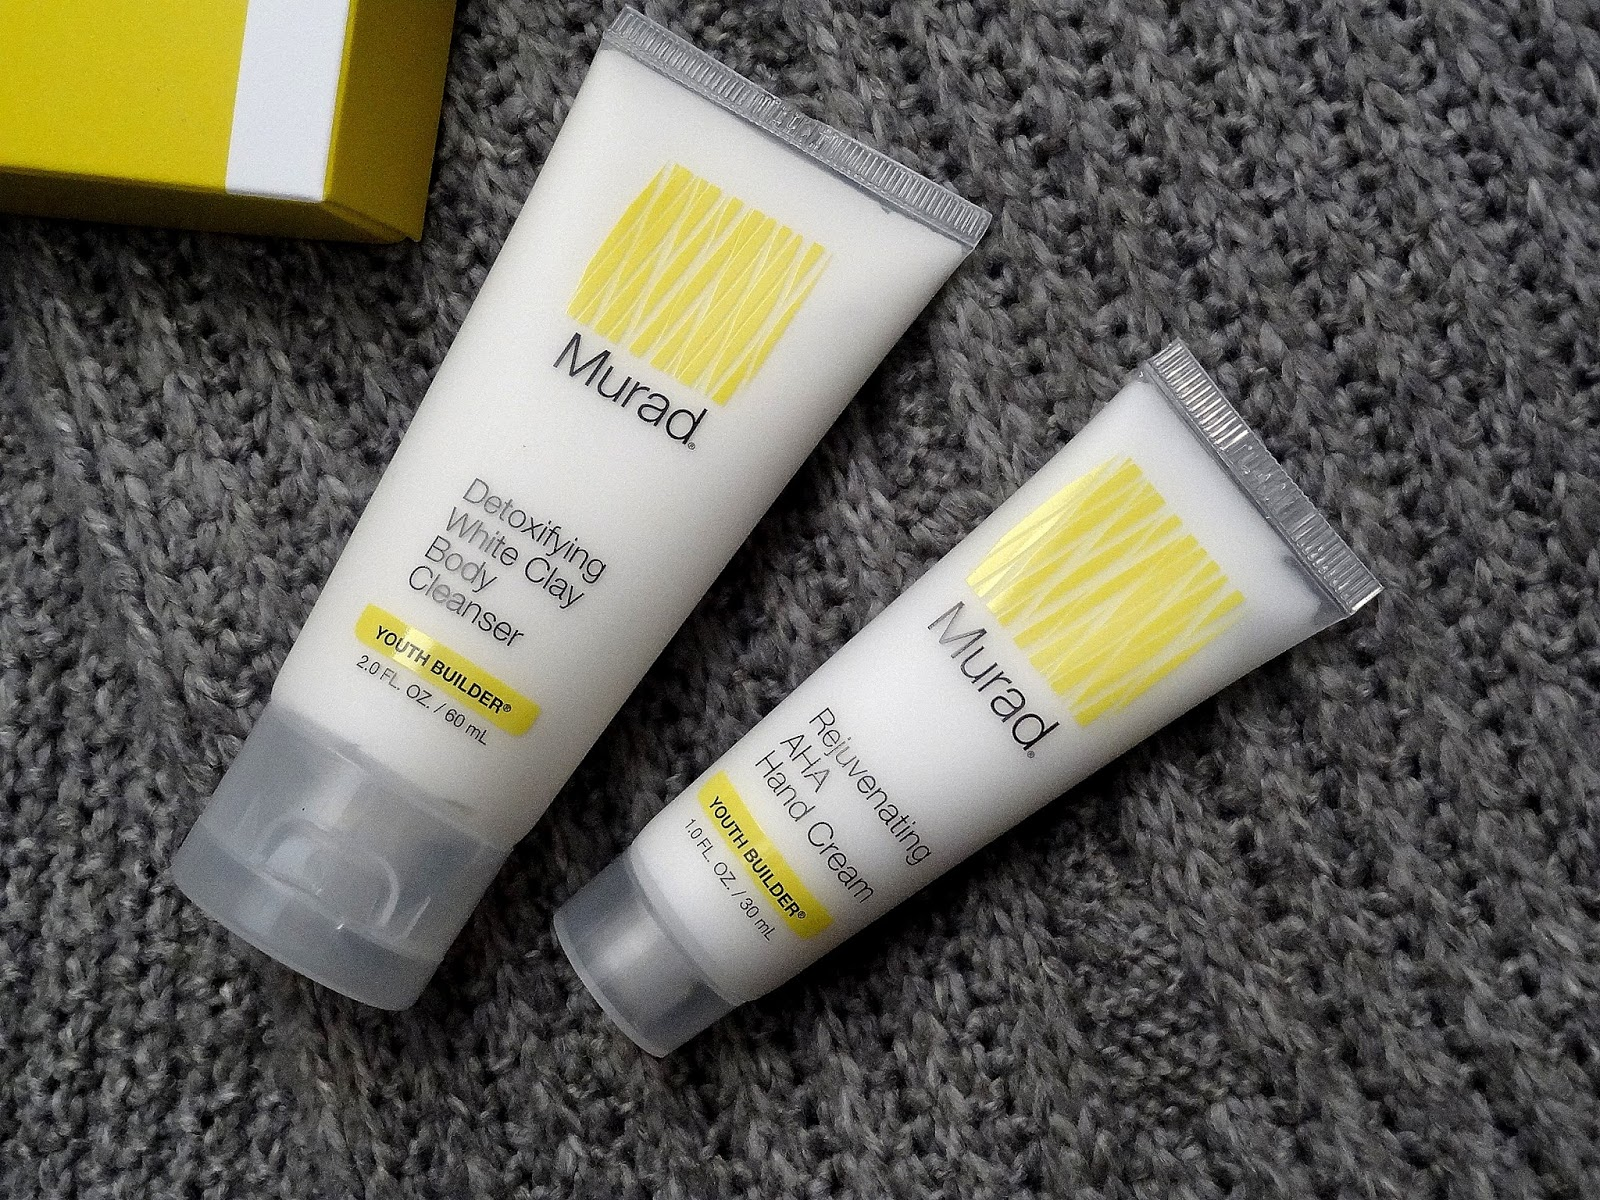 Murad Youth Booster Bodycare Preview Kit